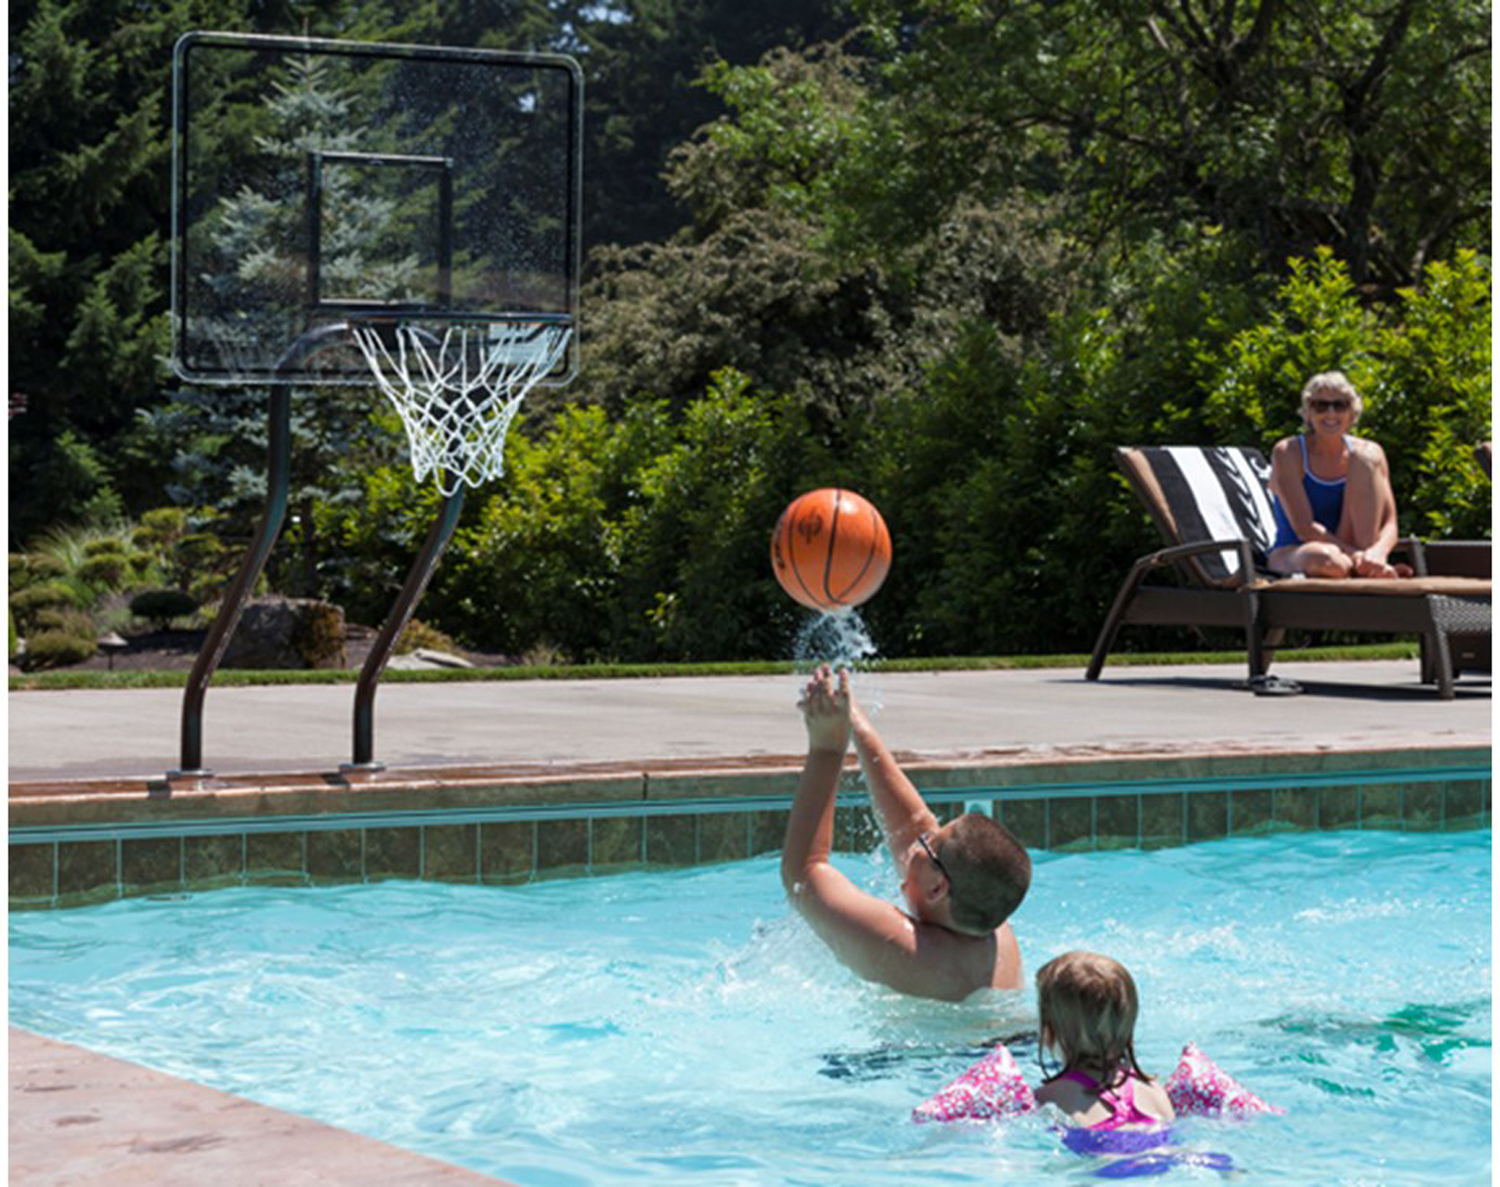 Turning your pool into a playland completehome - Pool basketball ...